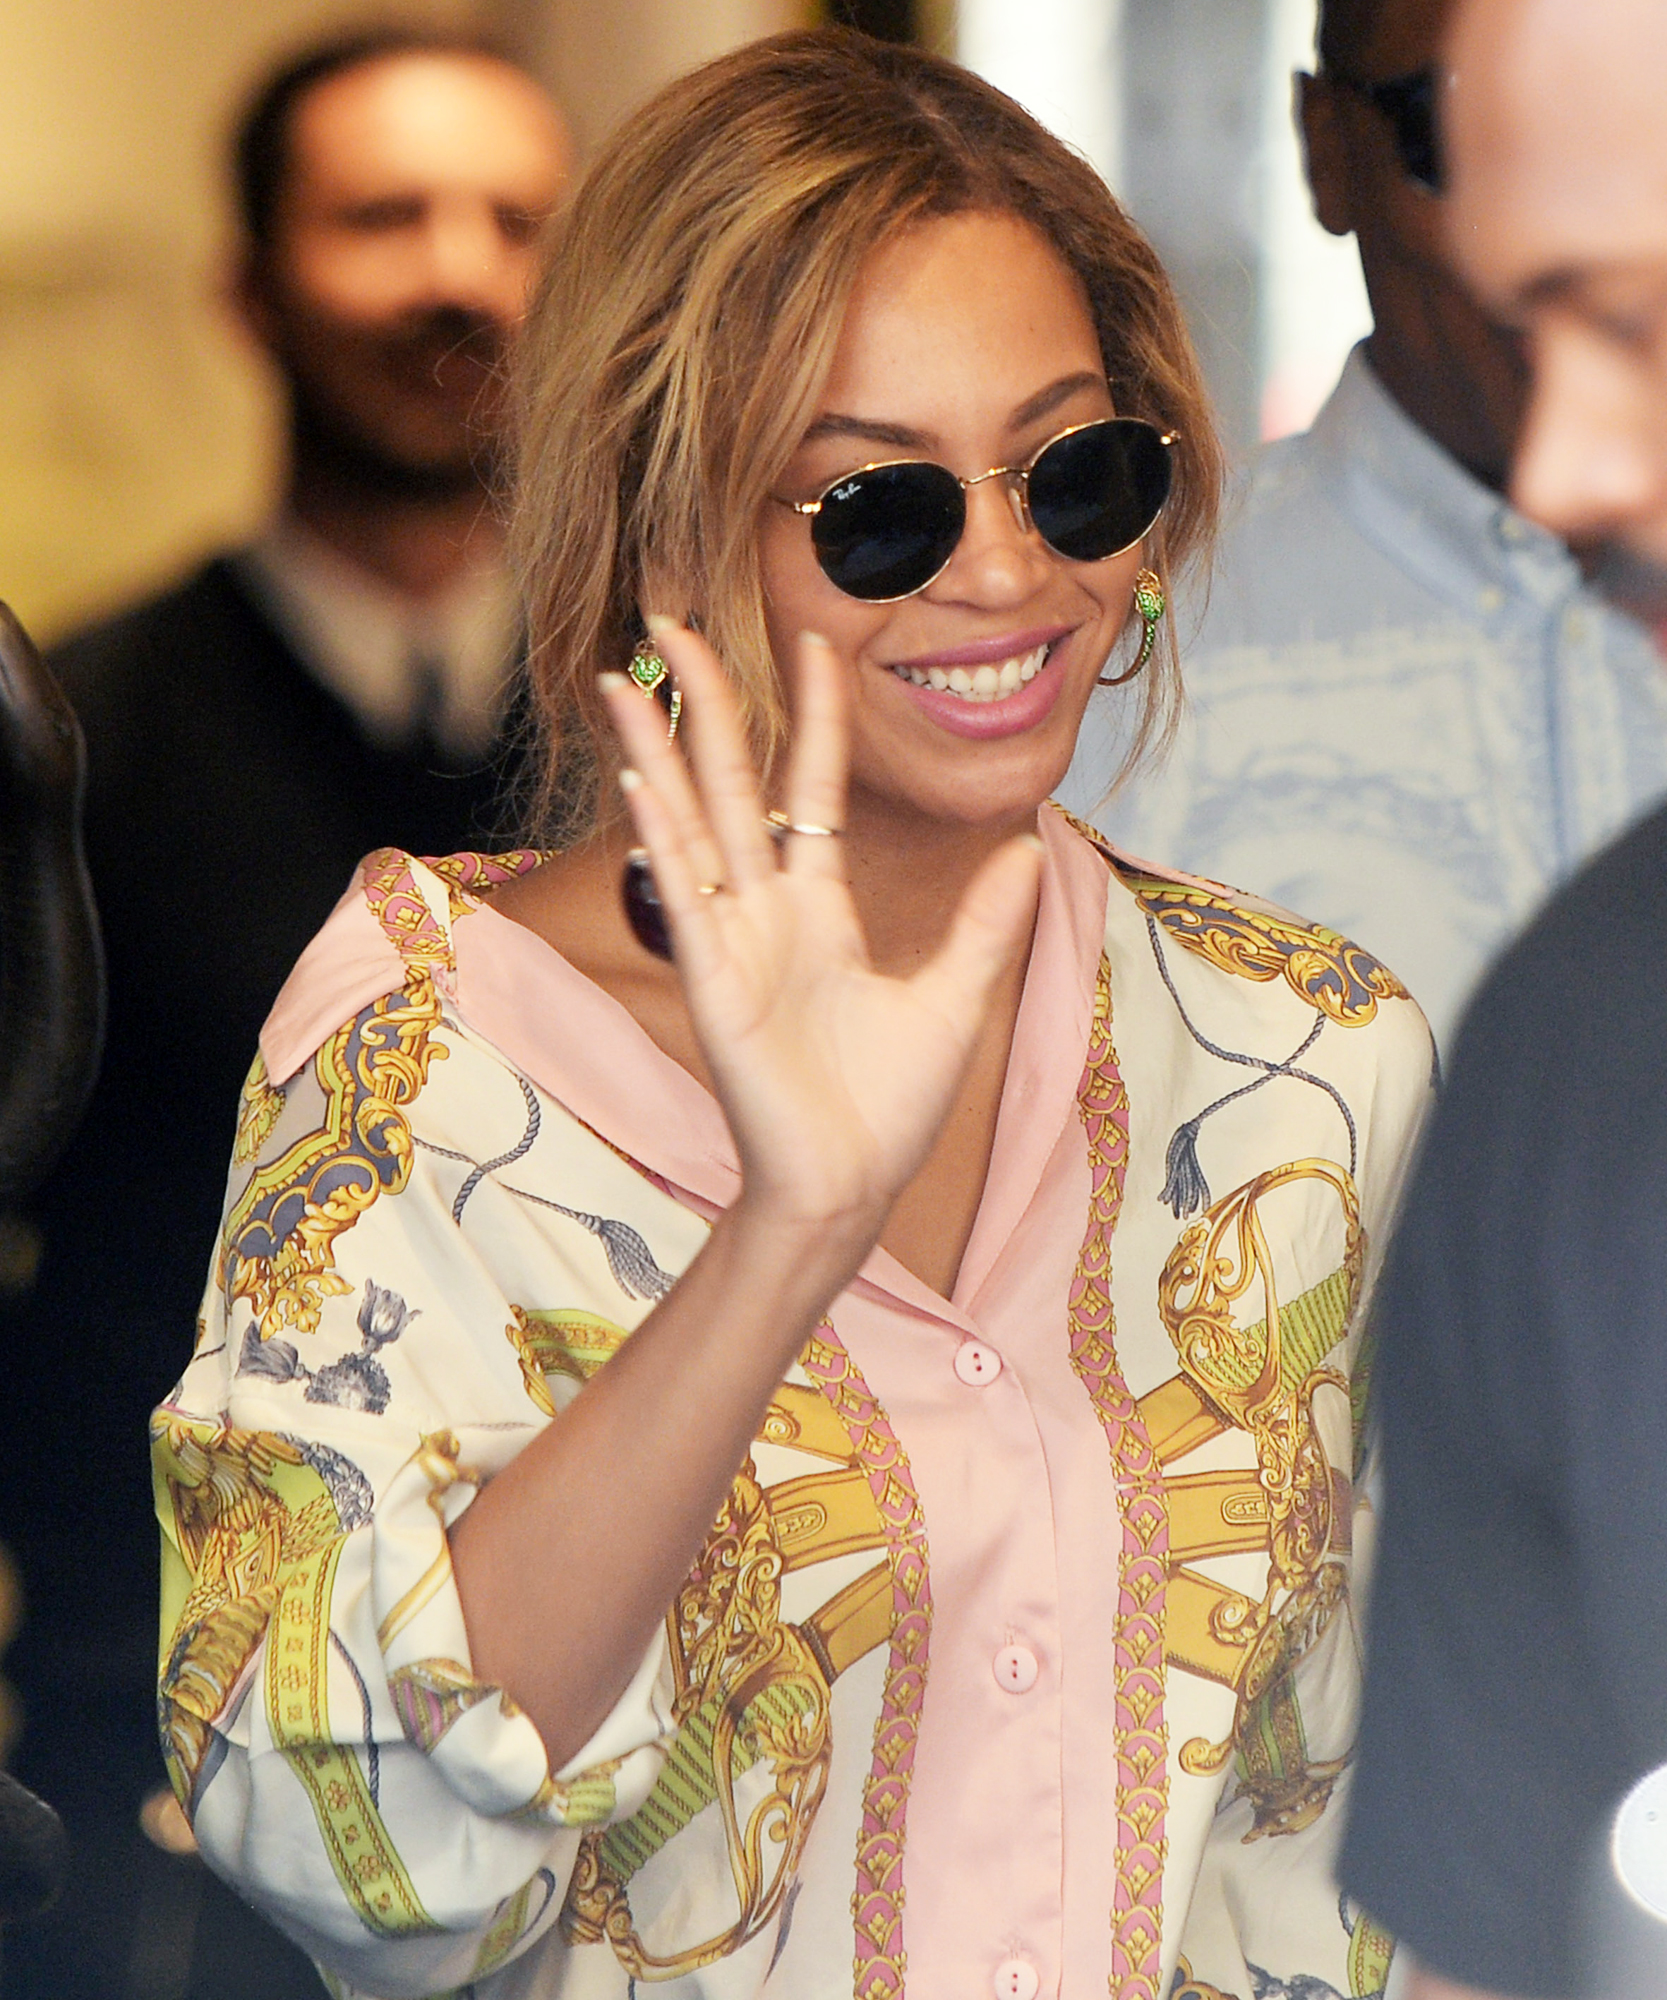 Beyonce and Jay Z Shopping in Milan Italy - Lead 2016